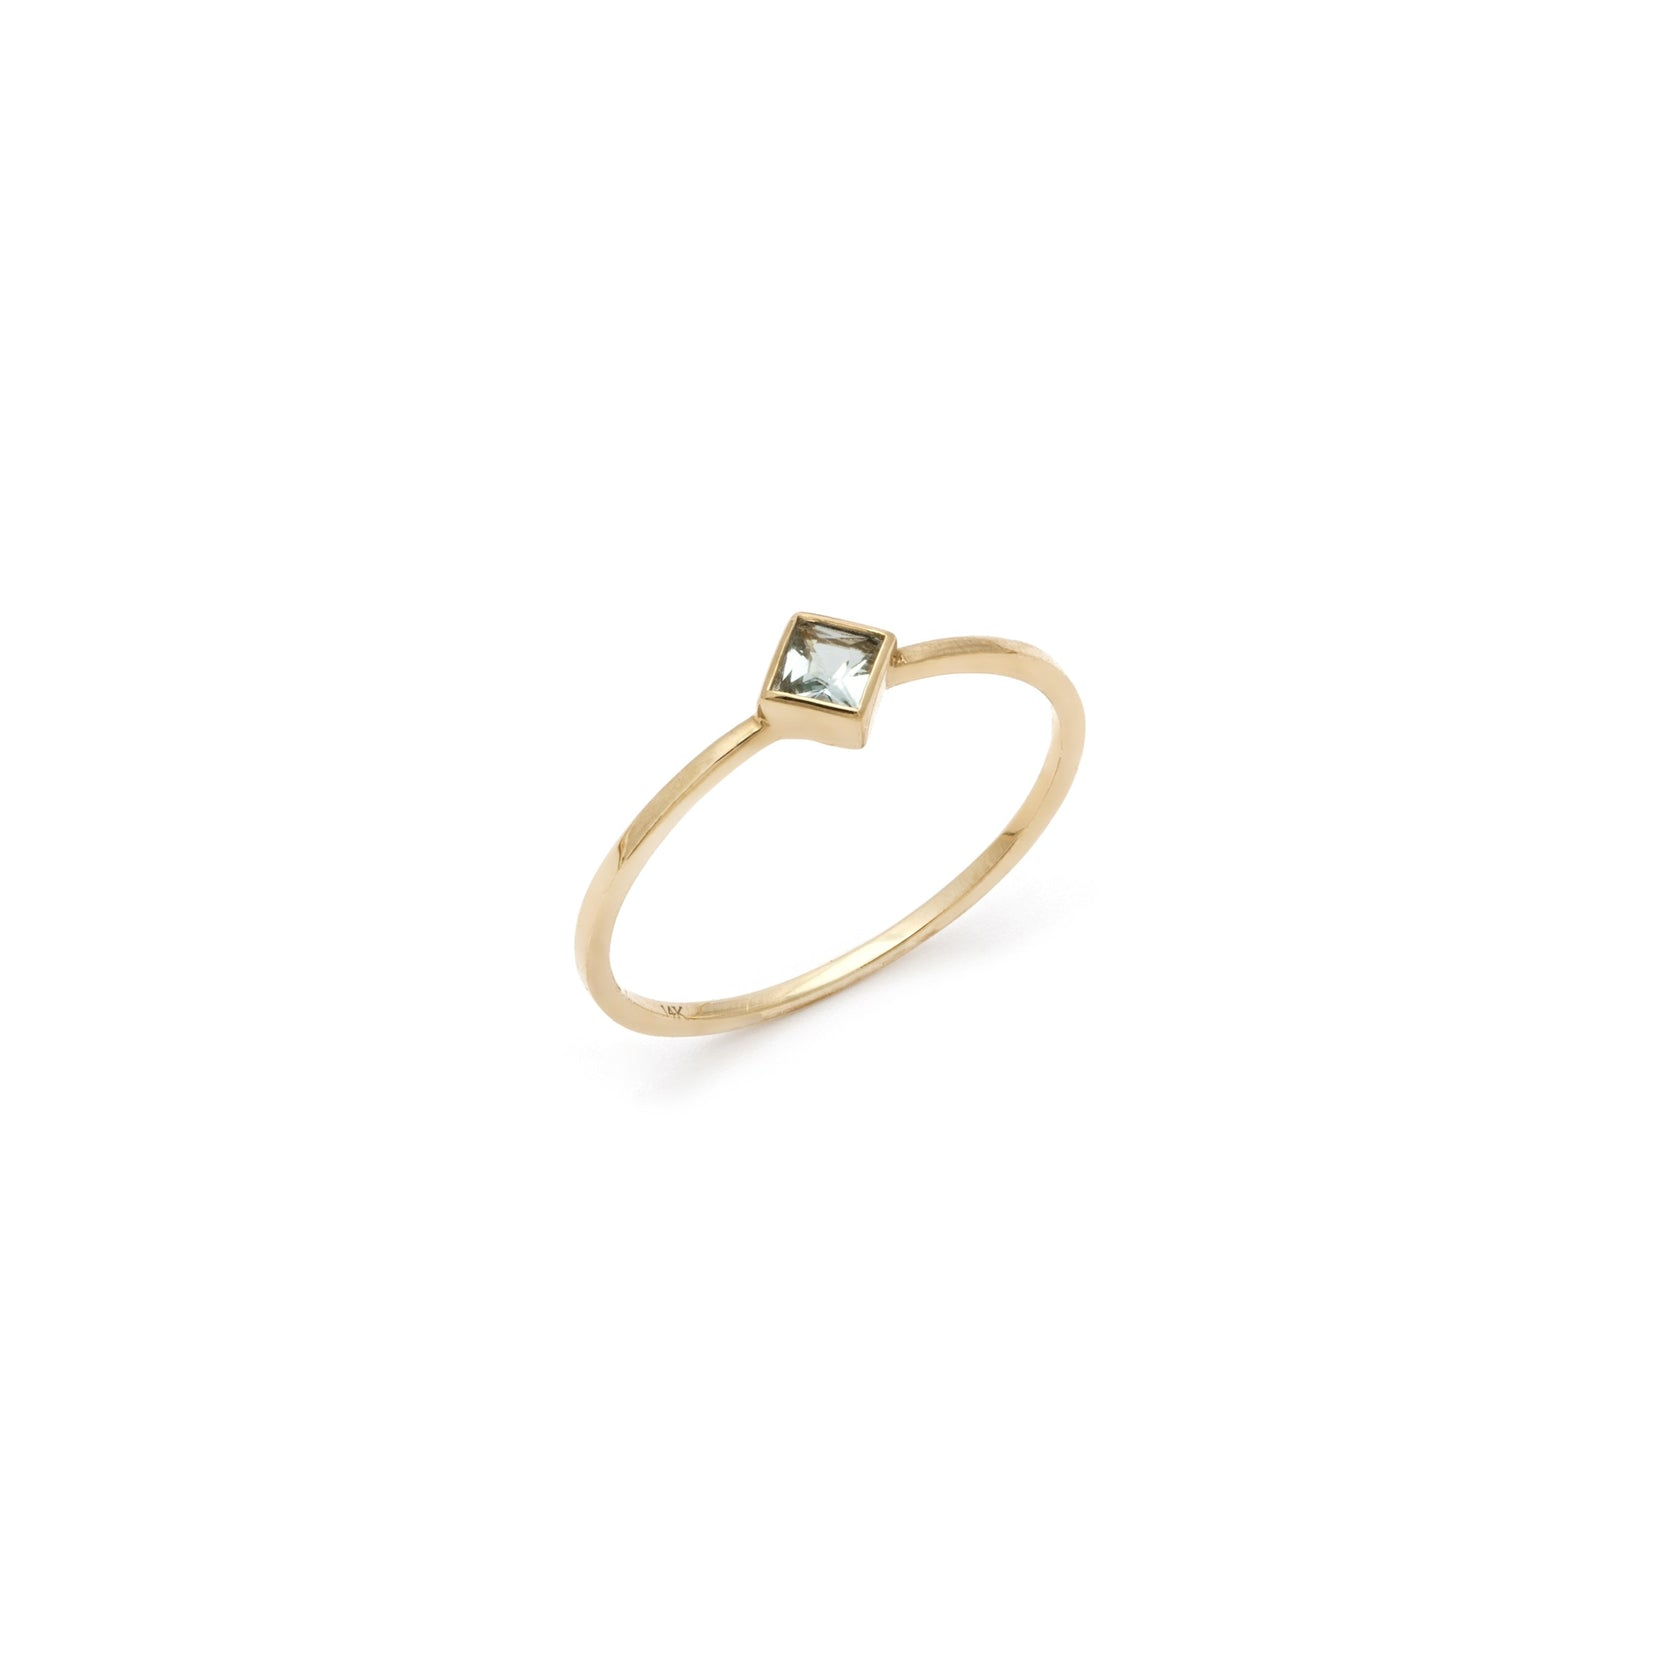 Coveted Aquamarine Ring - 14k Solid Gold